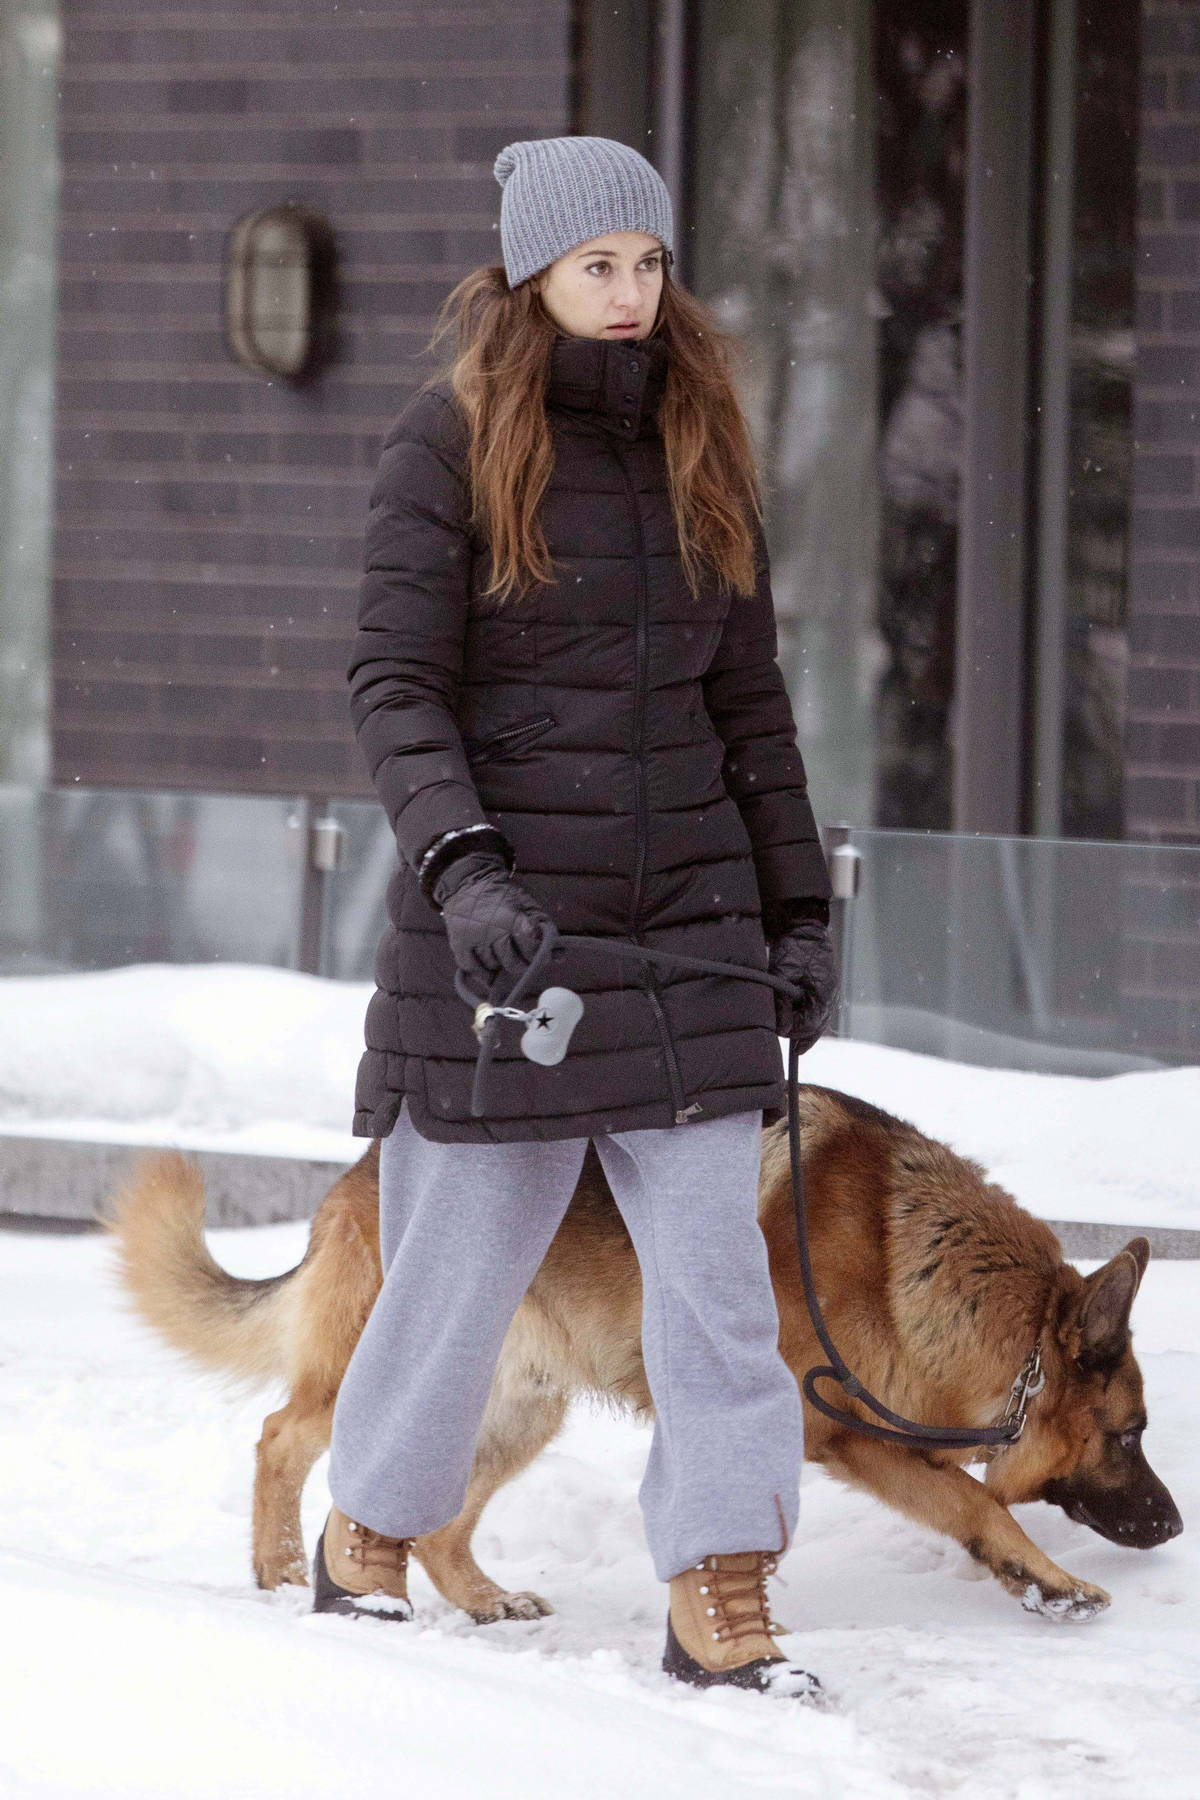 Shailene Woodley steps out in the snow to walk her dog in Montreal, Canada